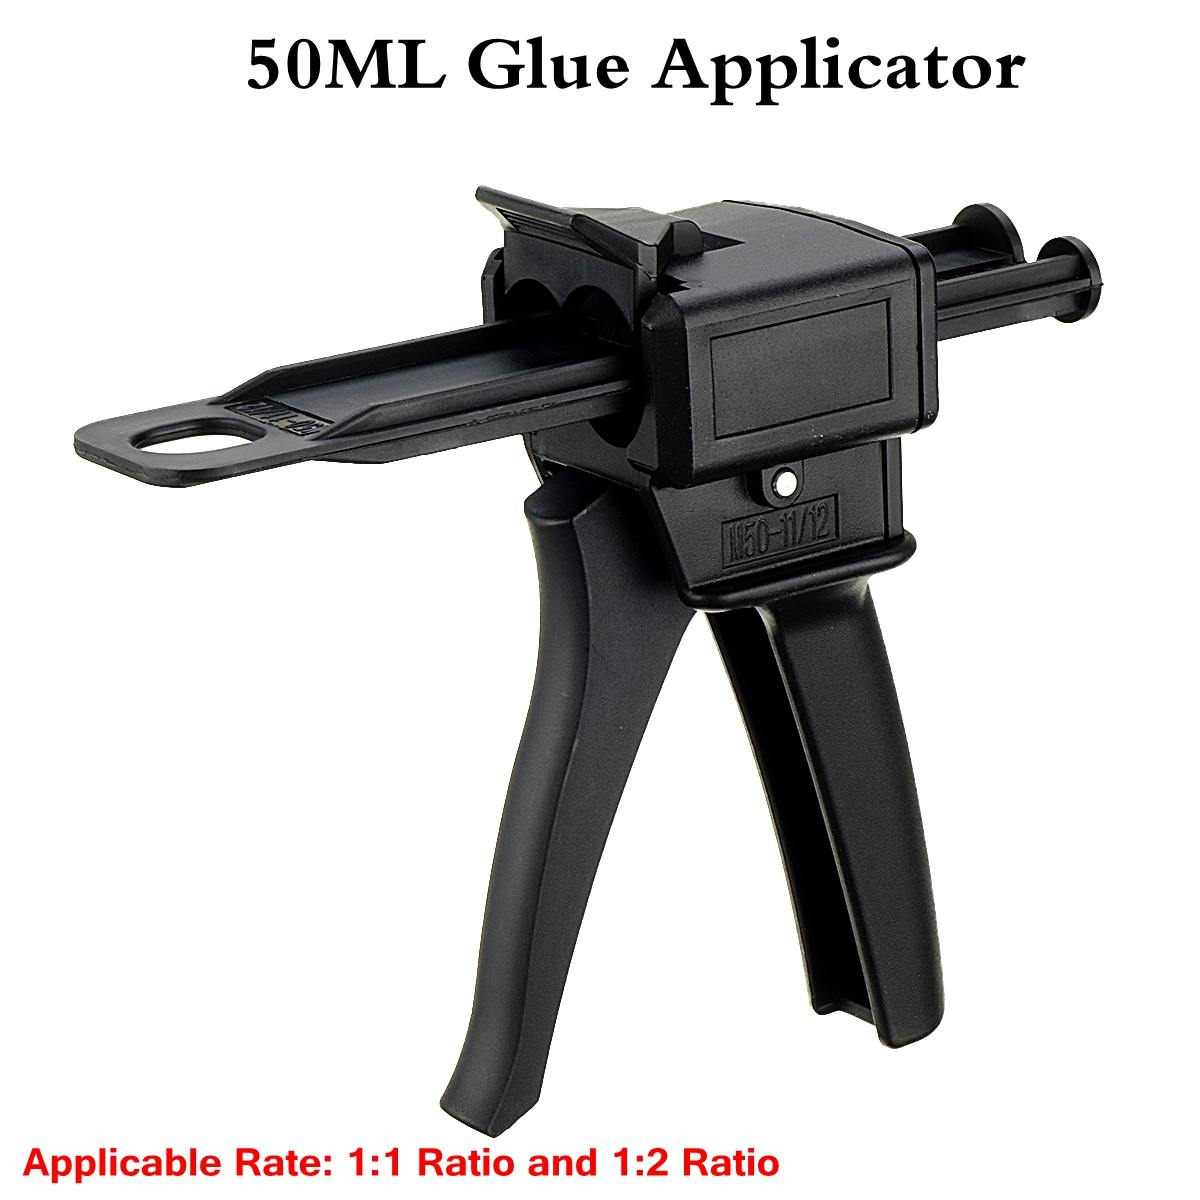 Glue Guns 50ml Two Component AB Epoxy Sealant Glue Applicator Glue Adhensive Squeeze Mixed 1:1/1:2 Manual Glue Applicator